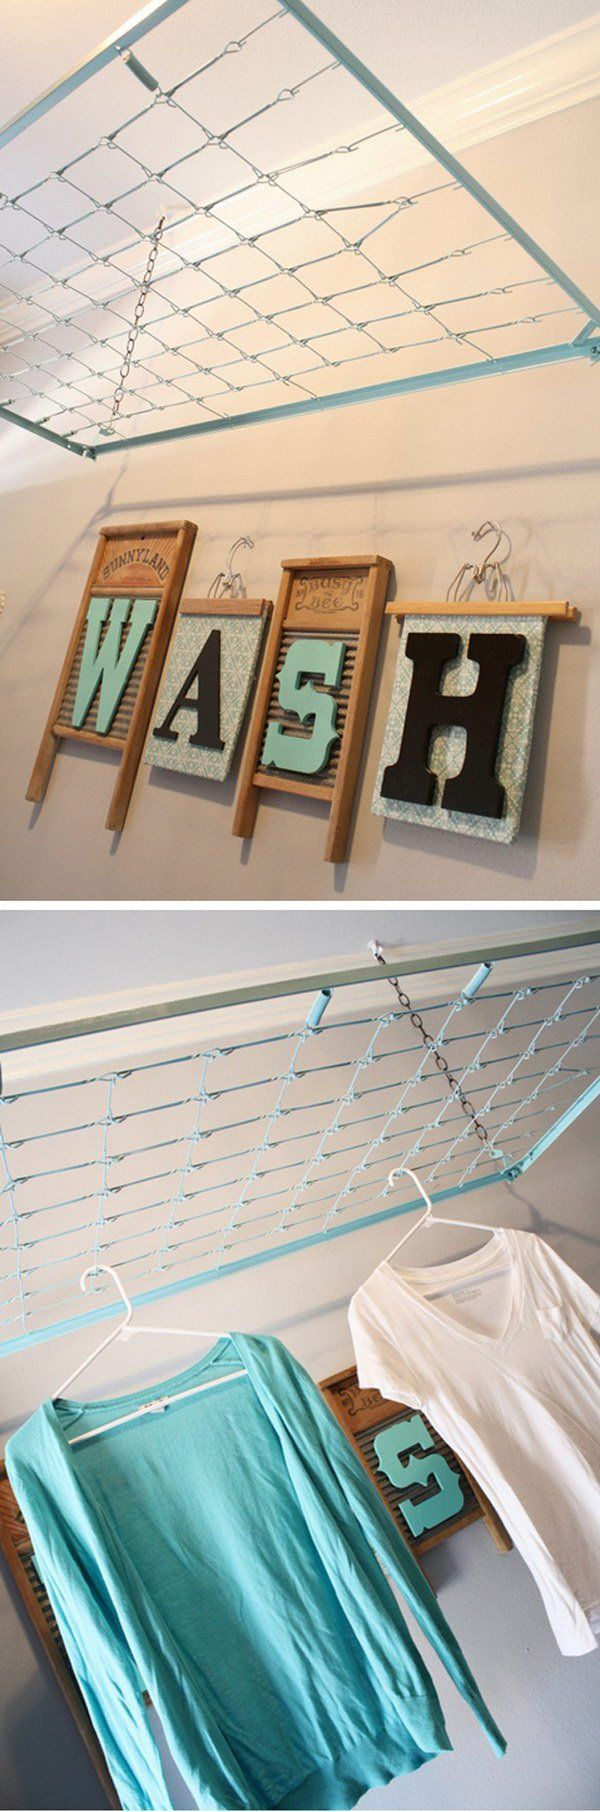 Laundry room wall decor pinterest - Best 25 Laundry Room Wall Decor Ideas On Pinterest Laundry Closet Makeover Wash Room And Laundry Room Storage